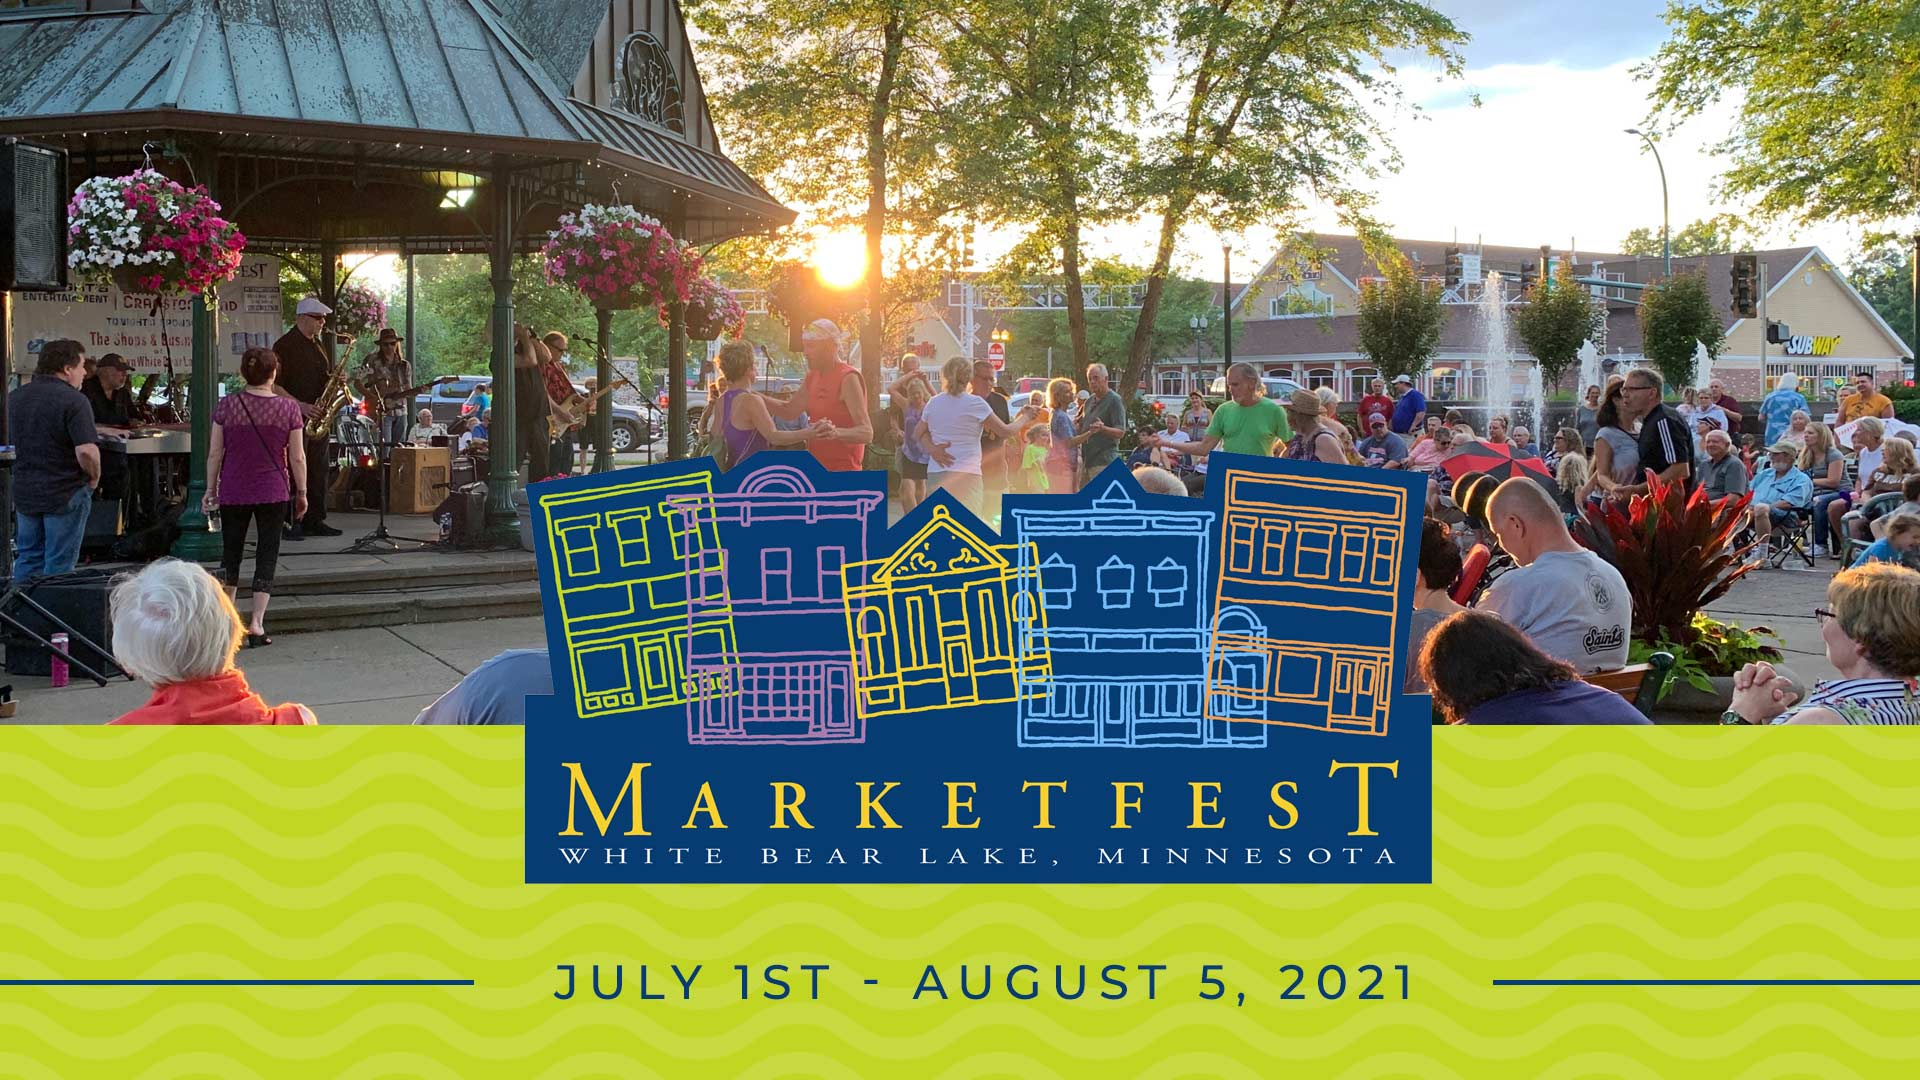 Marketfest July 1 - August 5, 2021